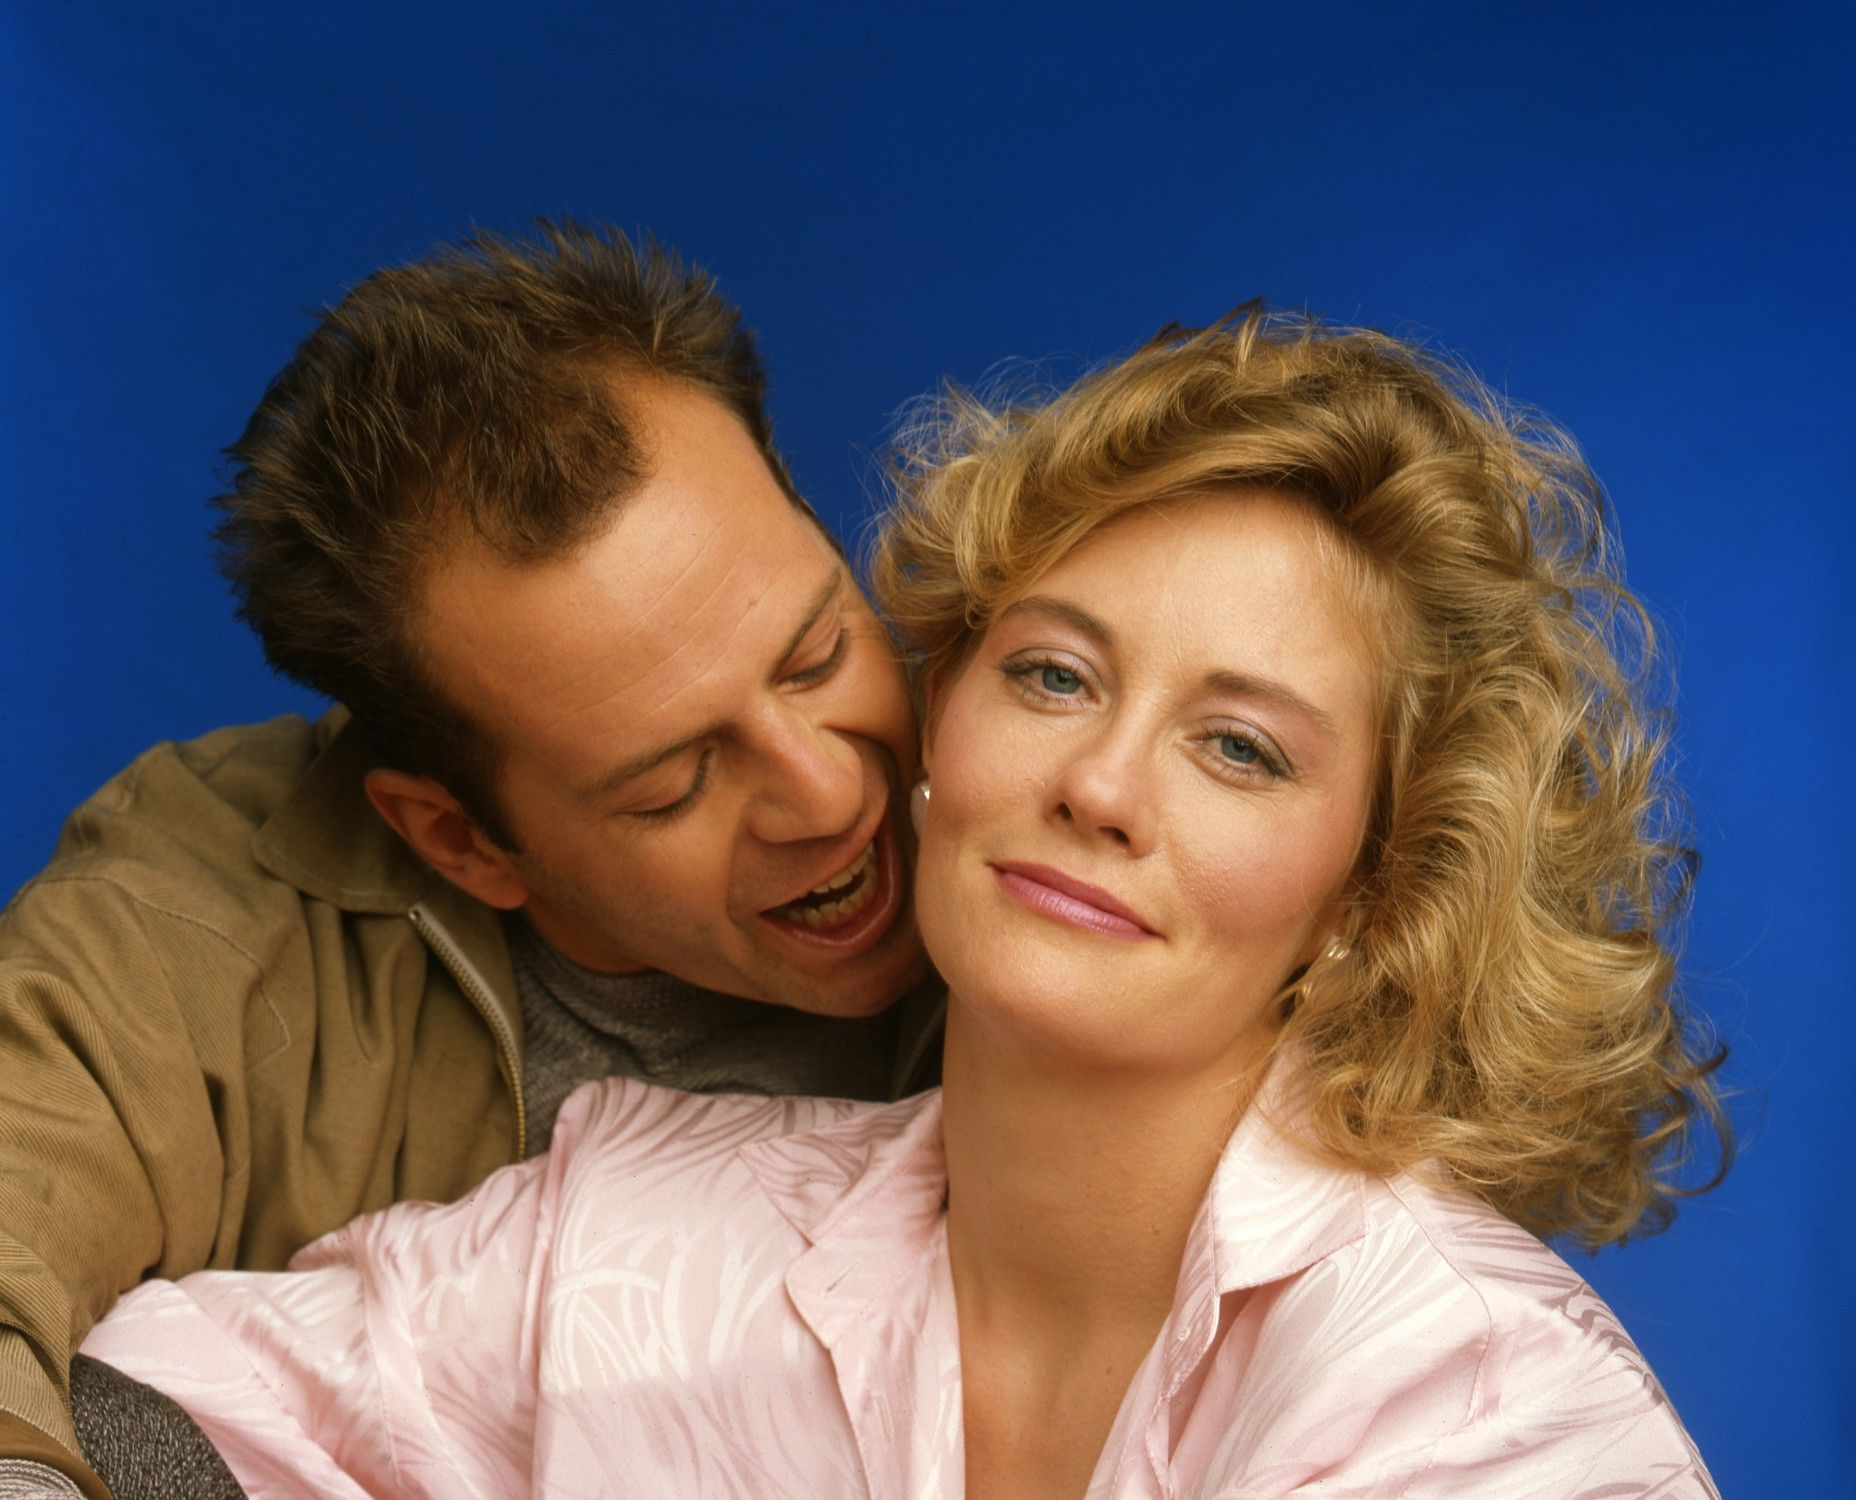 bruce willis cybill shepherd cool people in color and background photos of maddie and david for fans of moonlighting images 12544637